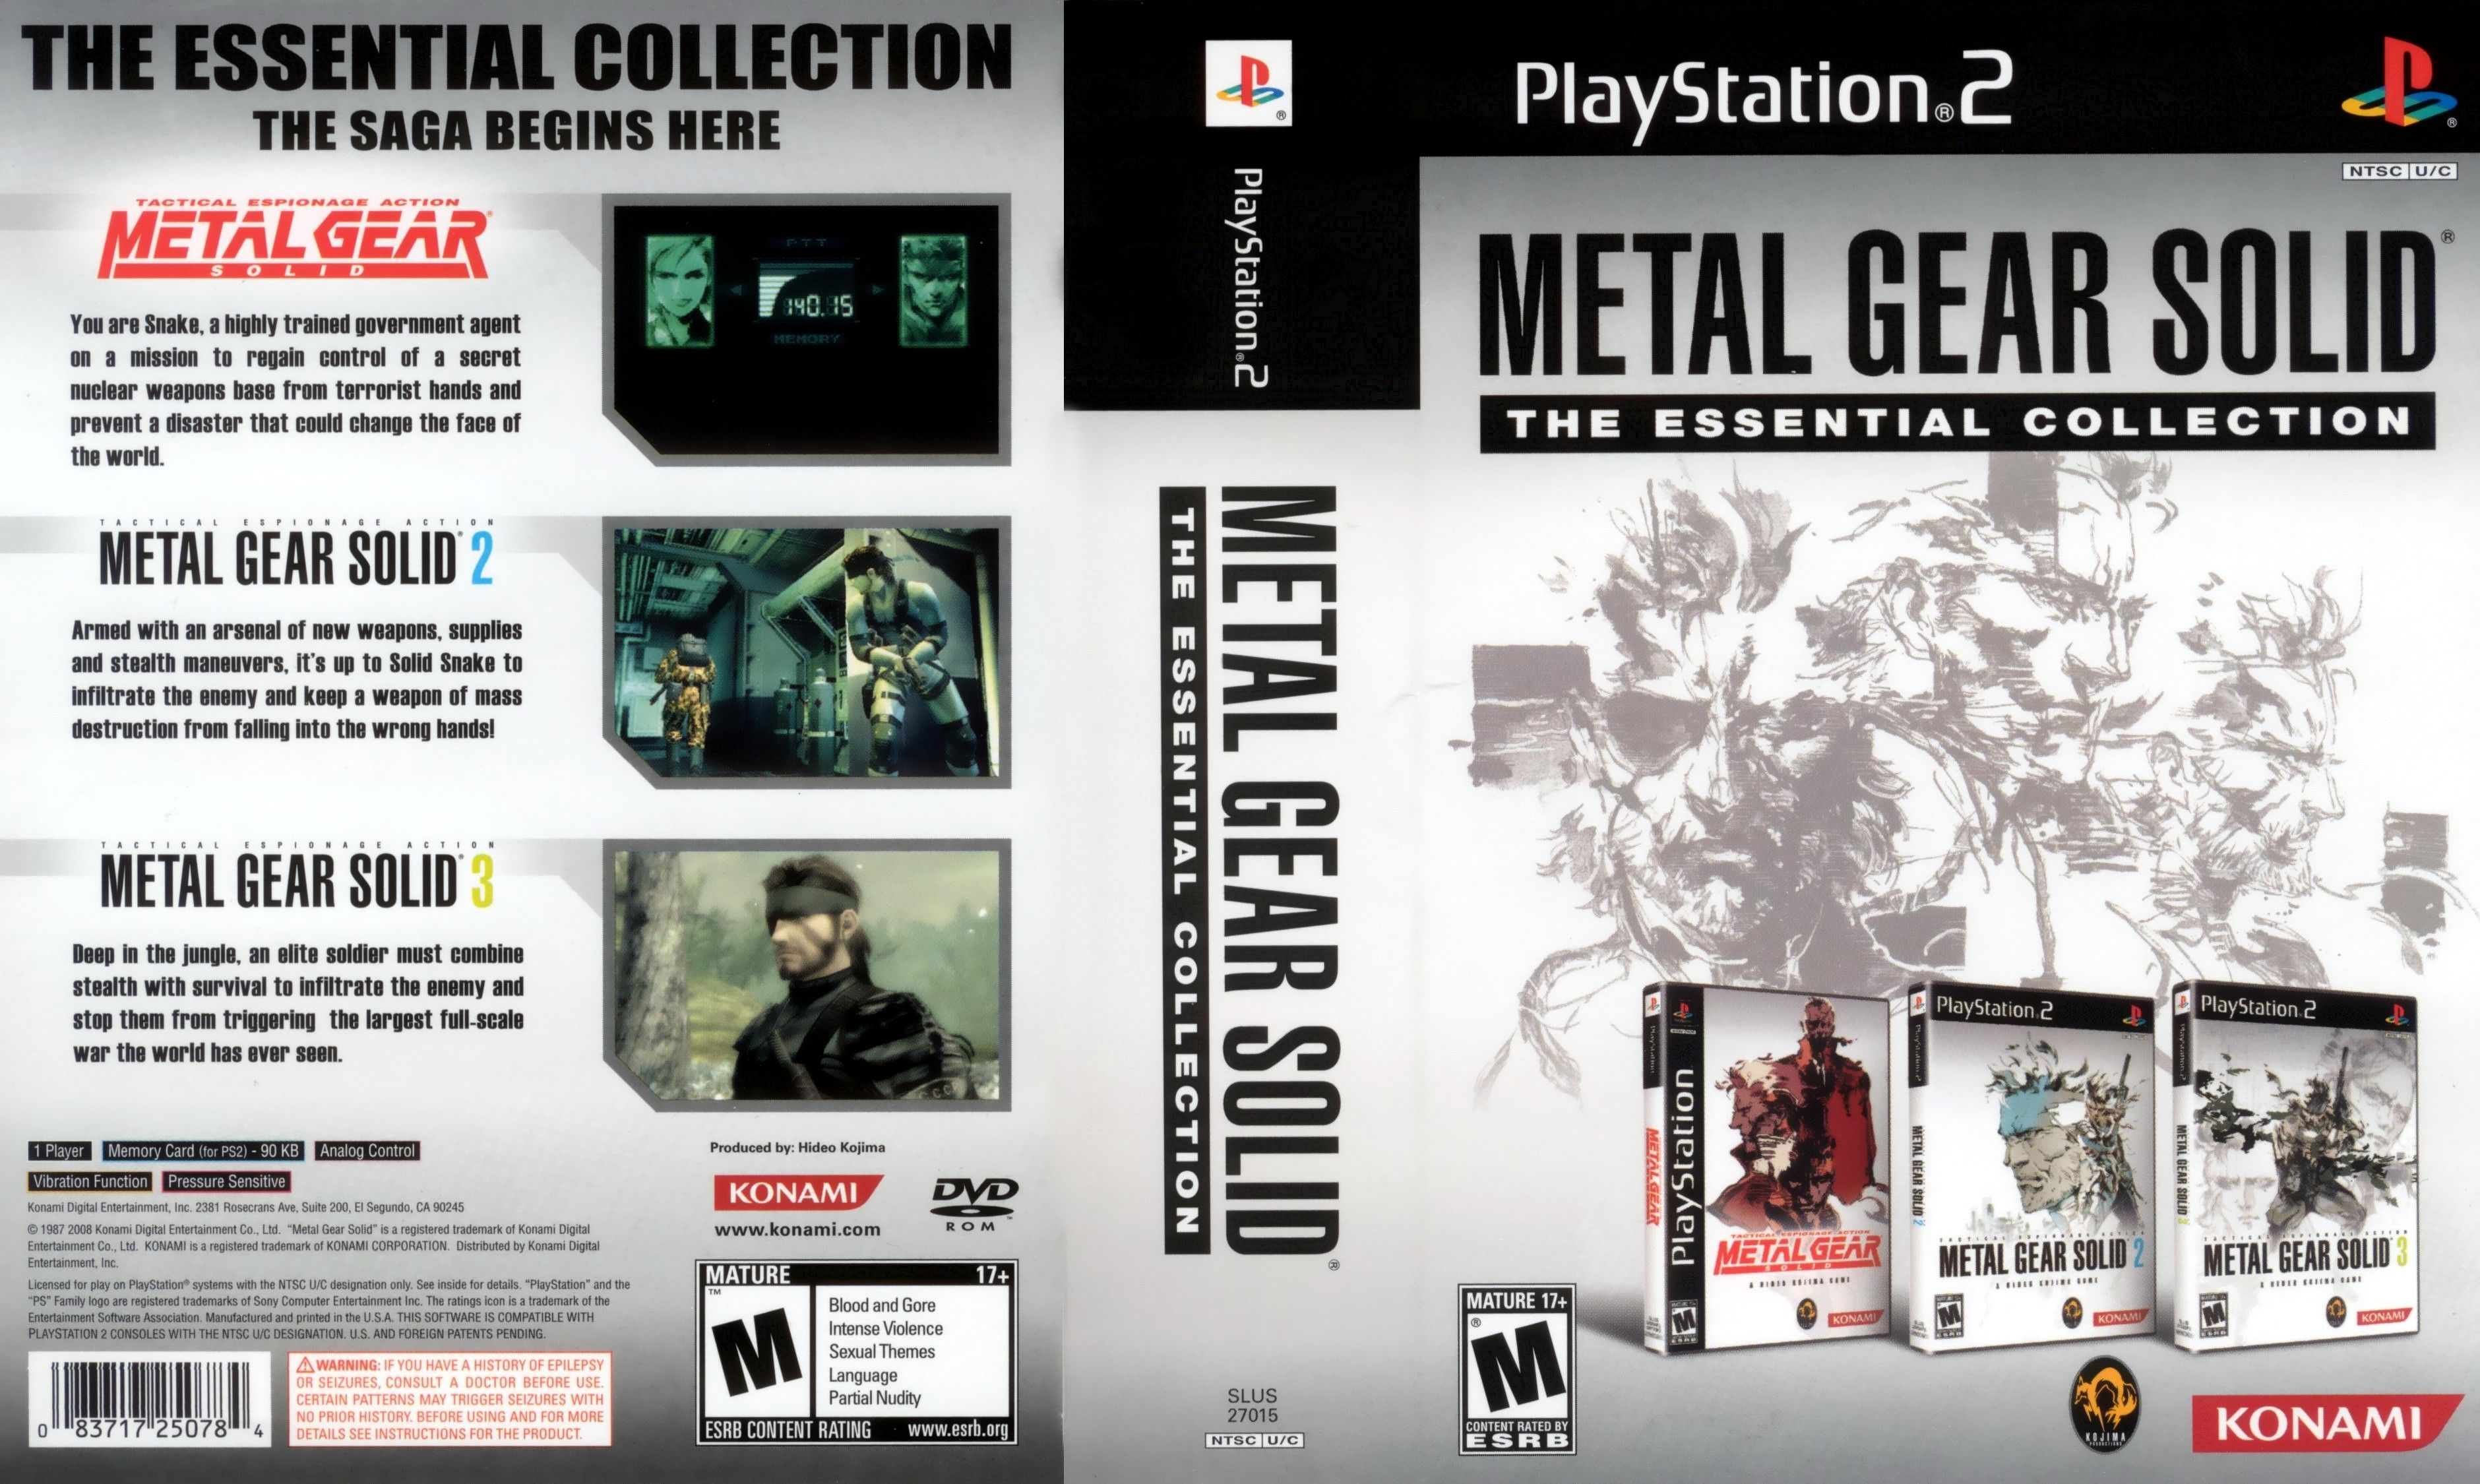 Metal_Gear_Solid_-_The_Essential_Collection_-_Multidisco-DVD-PS2.jpg